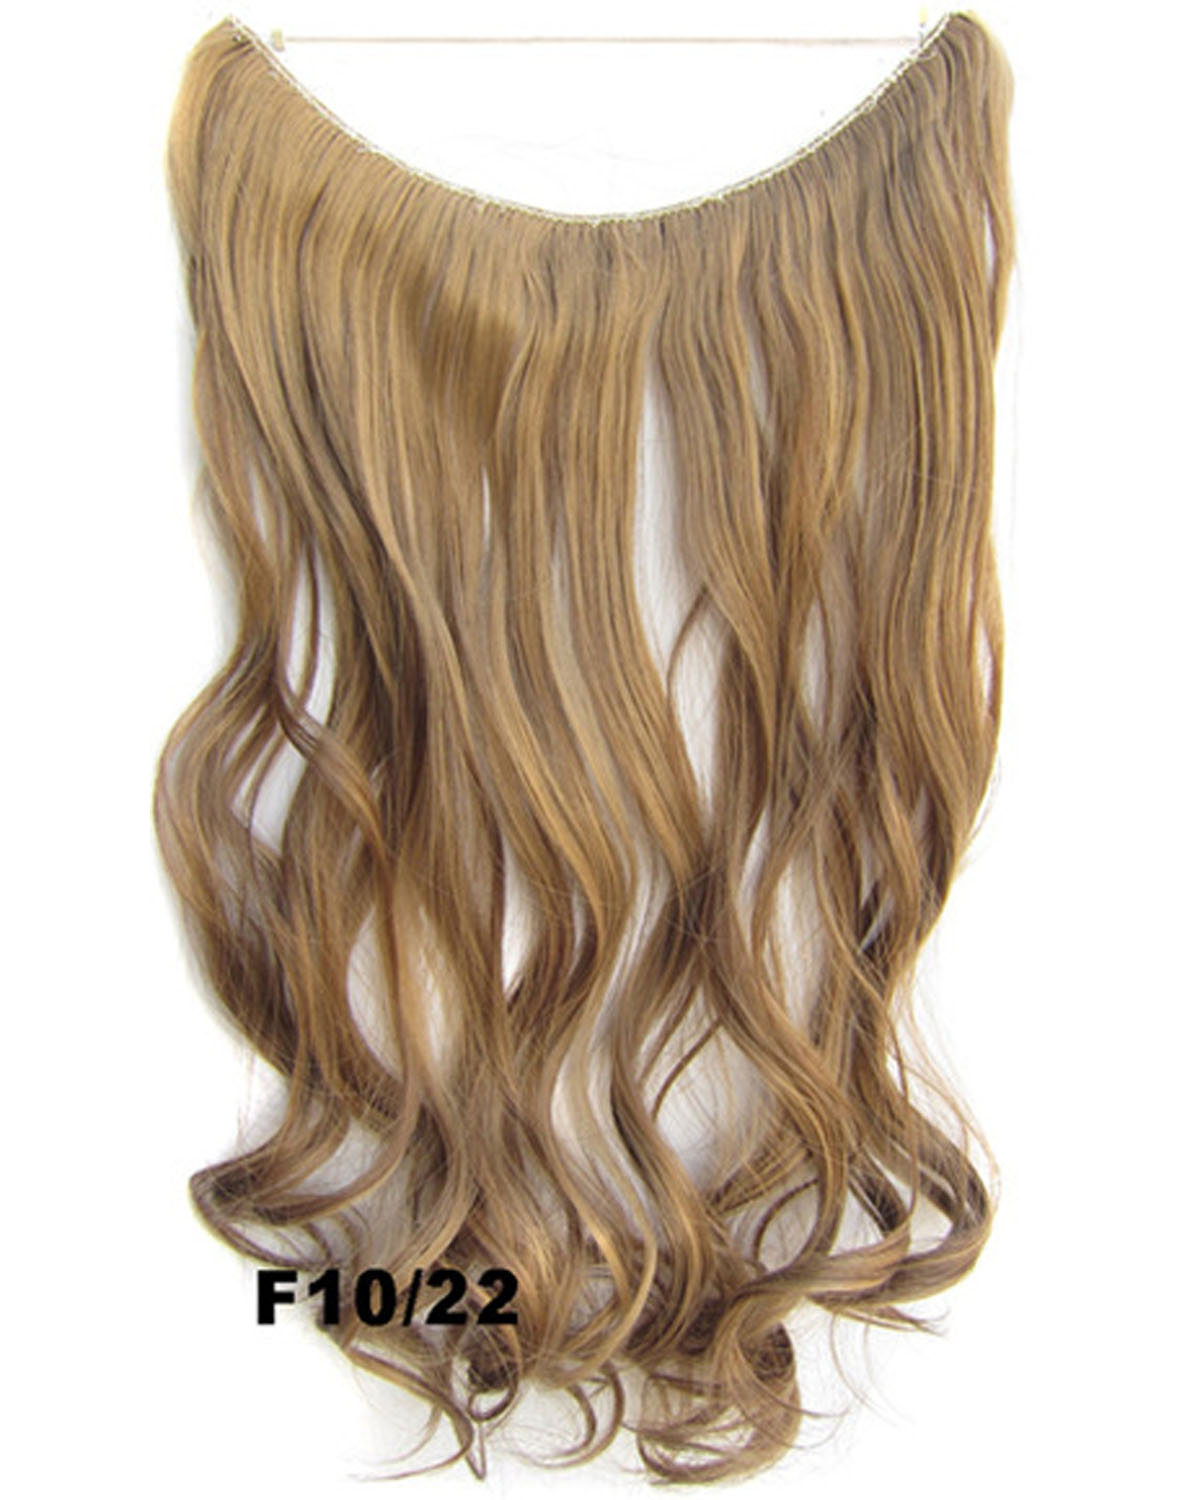 22 Inch Great Curly and Long Miracle One Piece Miracle Wire Flip in Synthetic Hair Extension F10/22 50g